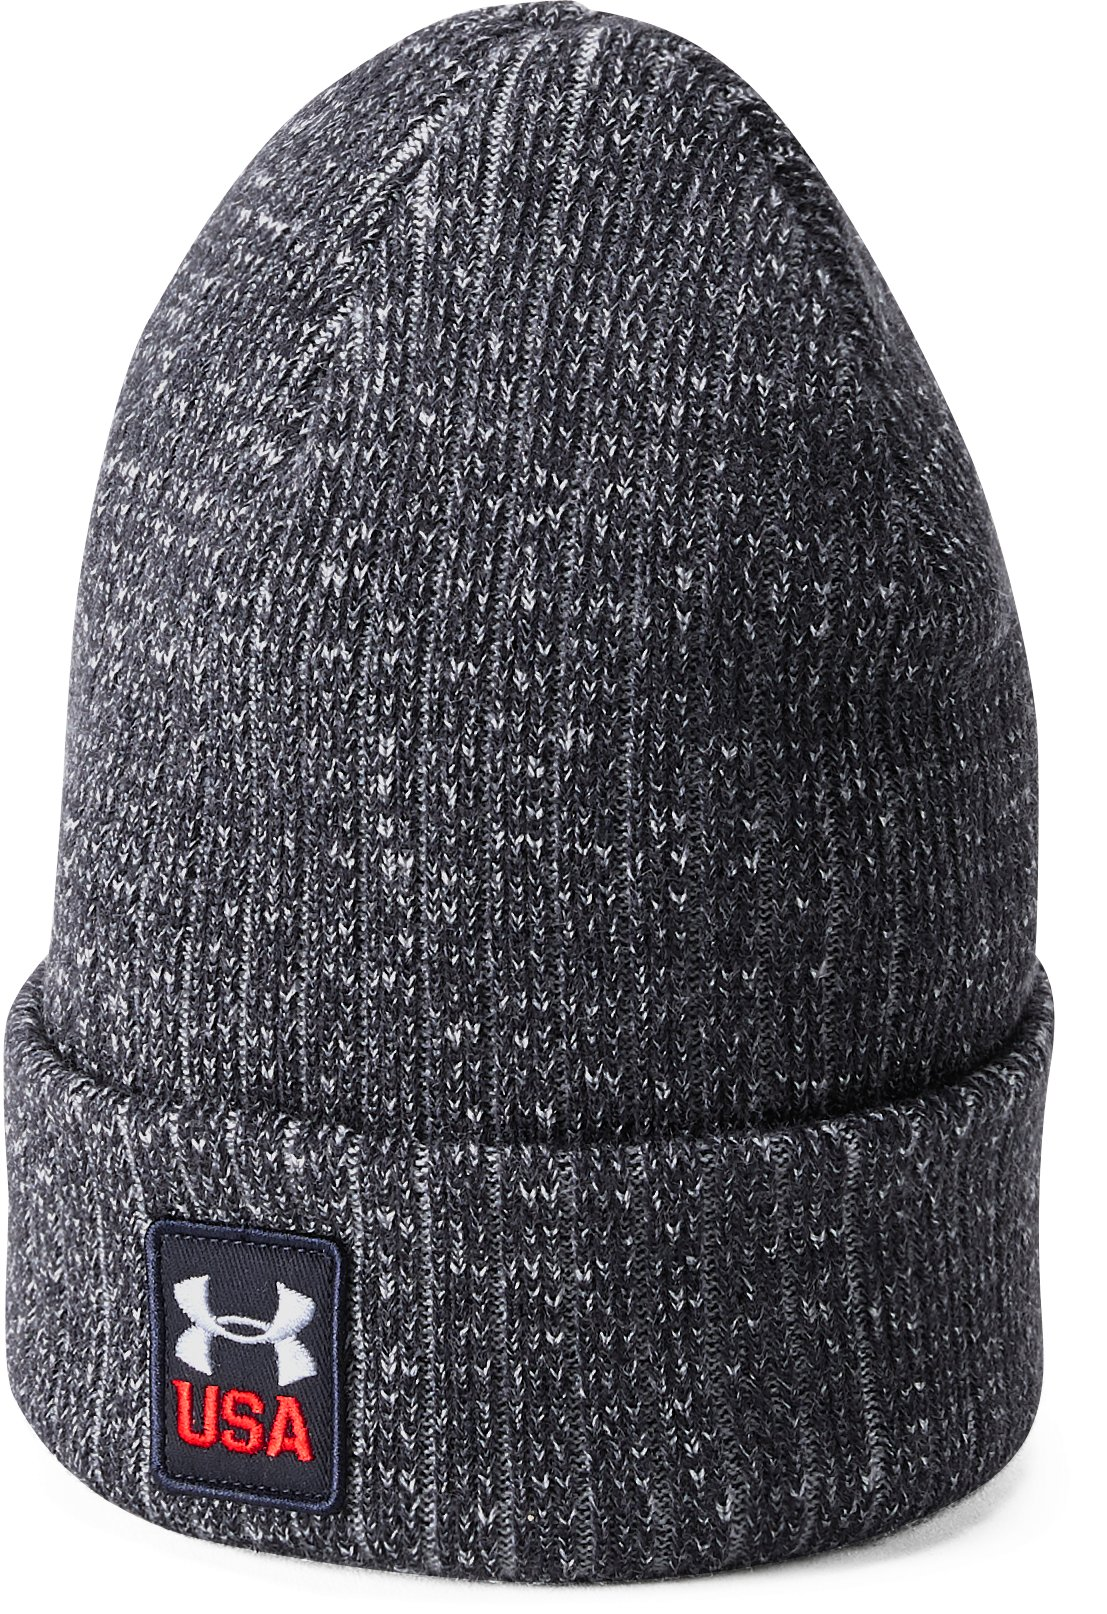 Men's UA Stars & Stripes Truckstop Beanie, ECLIPSE NAVY